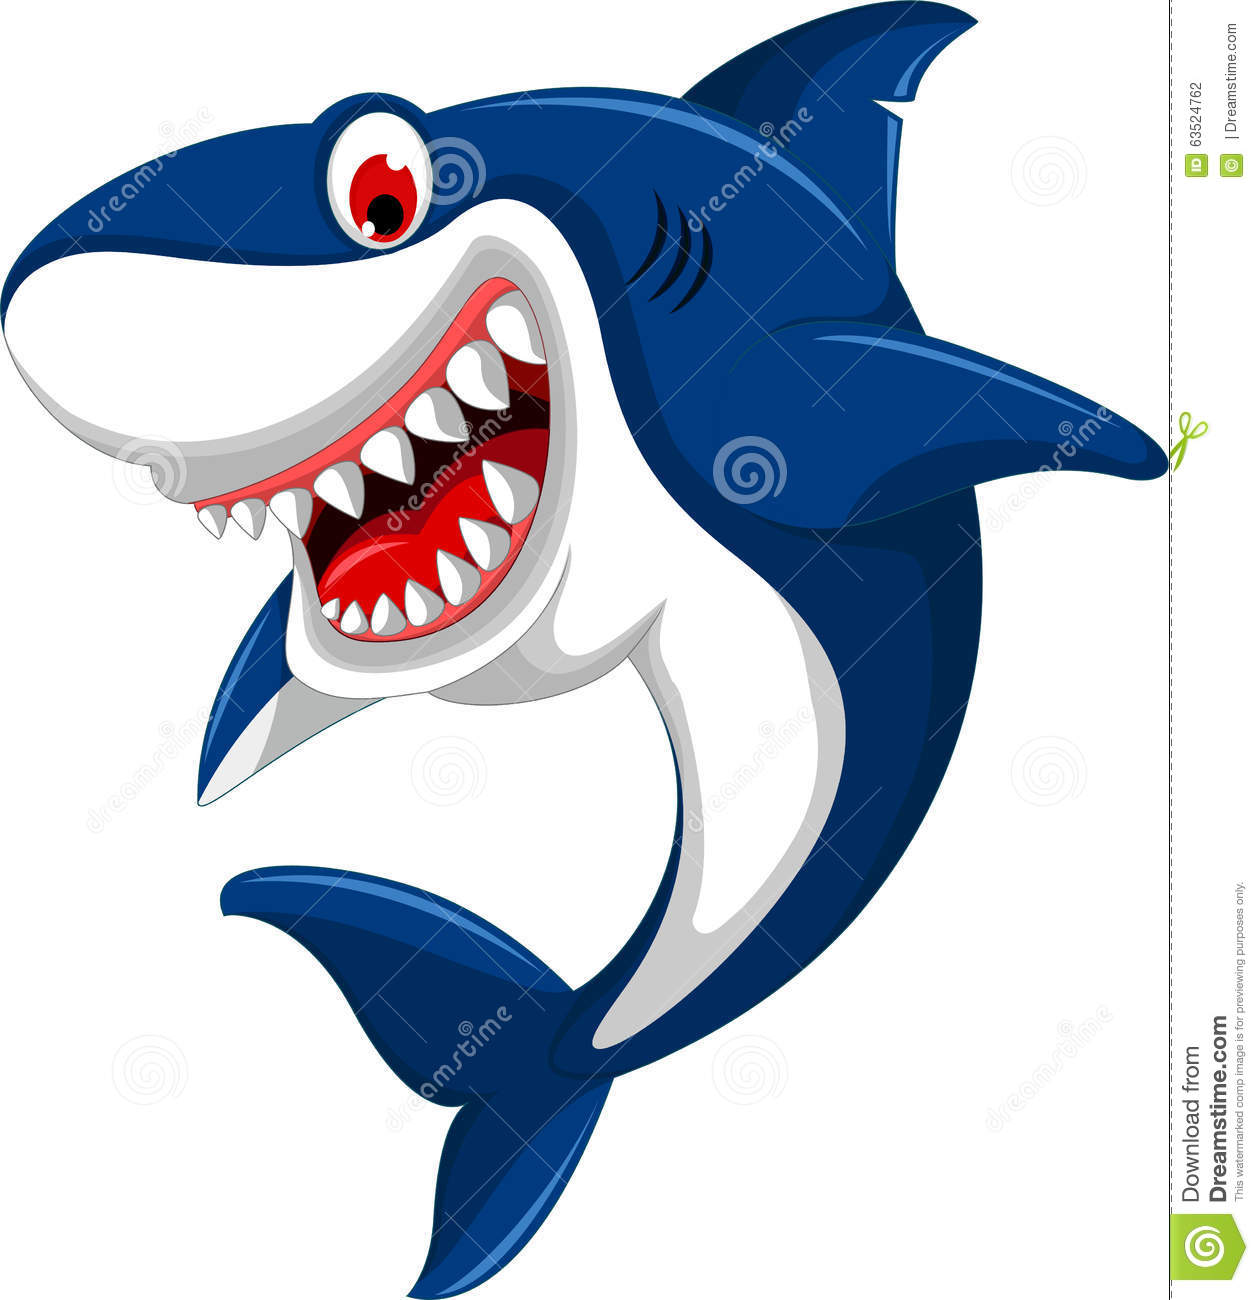 Angry shark clipart - photo#21